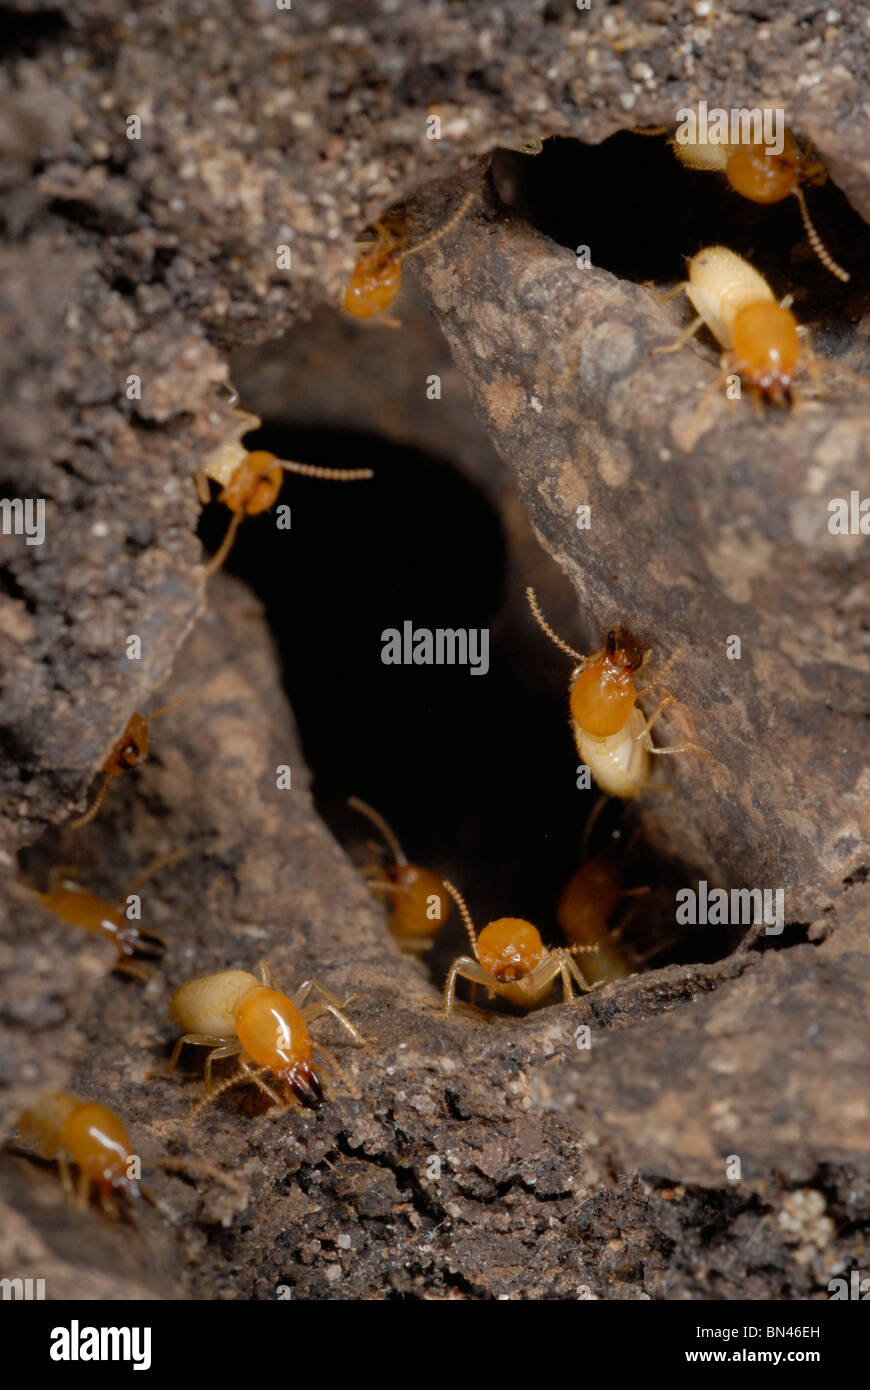 Close up of a disturbed nest of Formosan subterranean termites - Stock Image